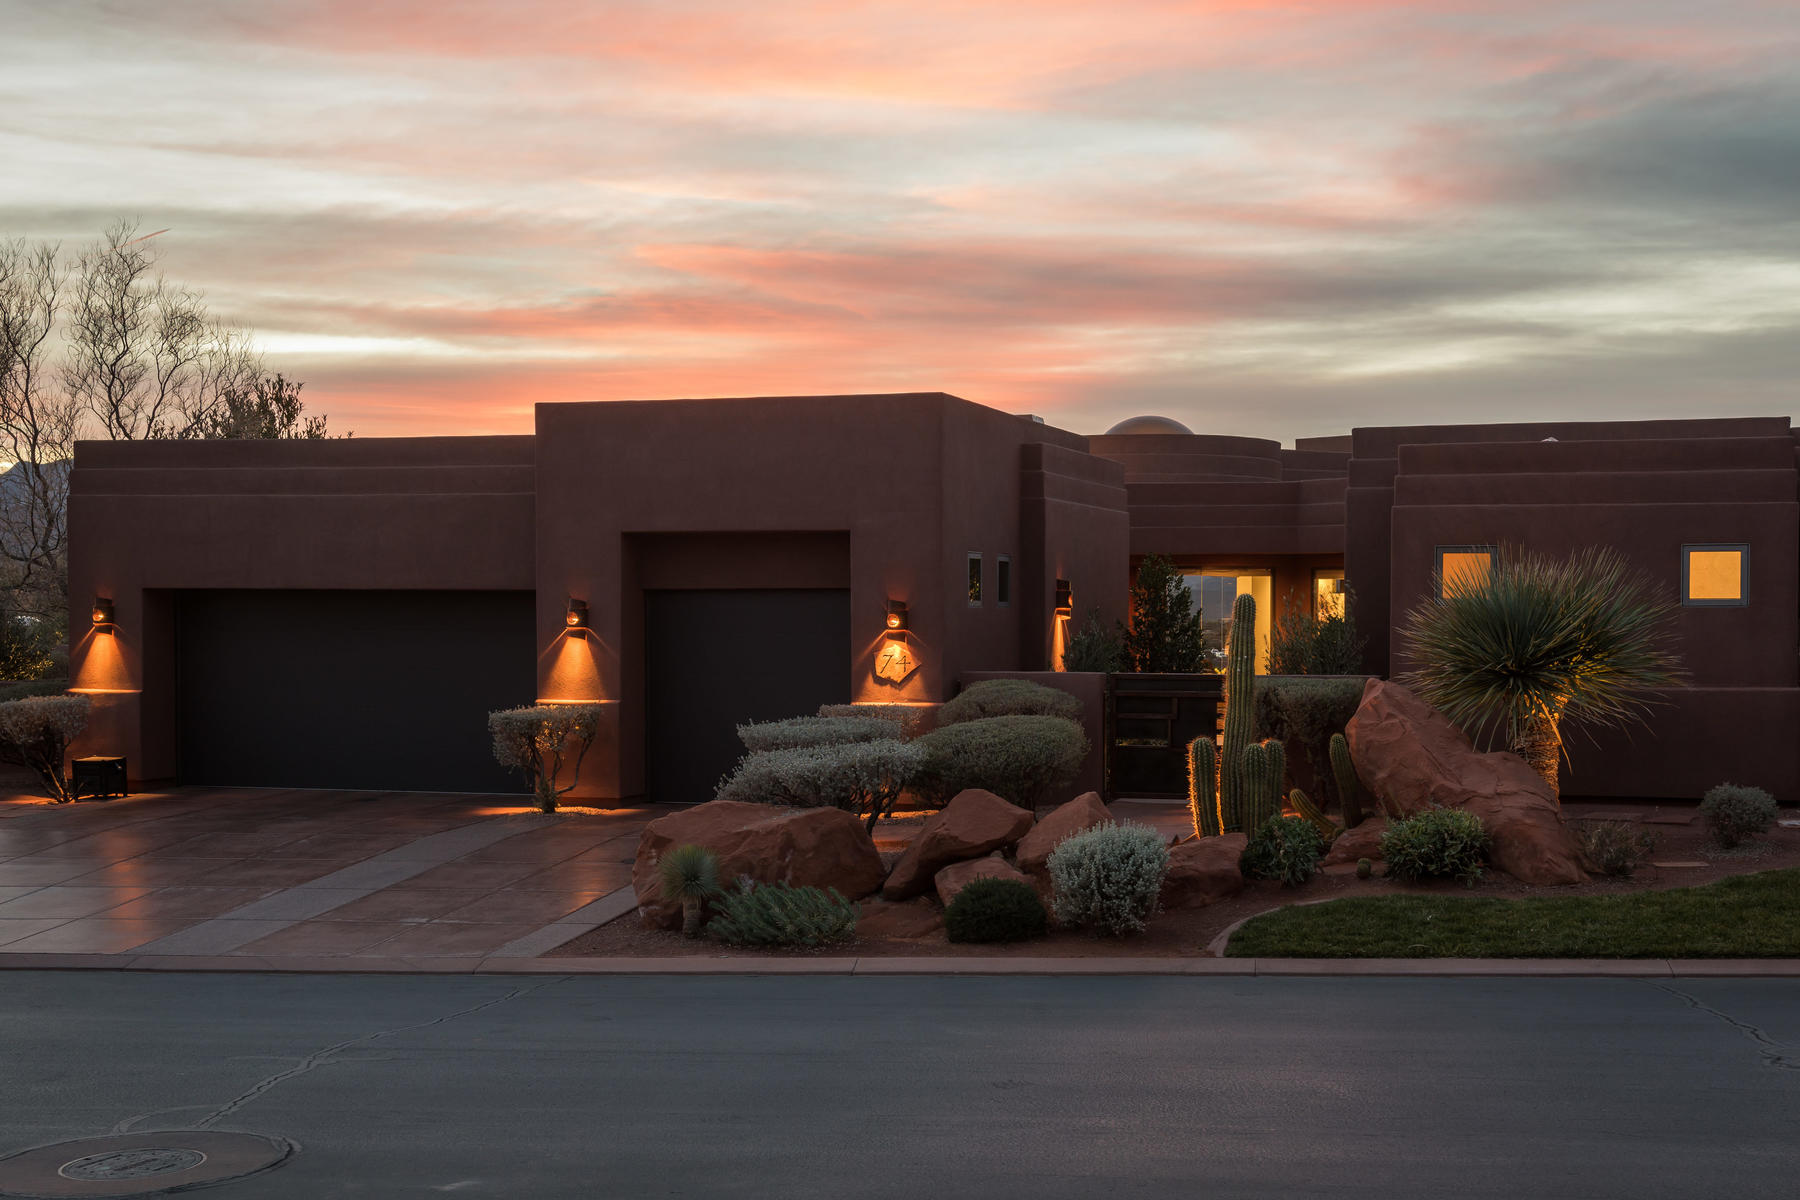 Single Family Home for Sale at Contemporary Elegance 2331 W Entrada Trail #74 St. George, Utah 84770 United States